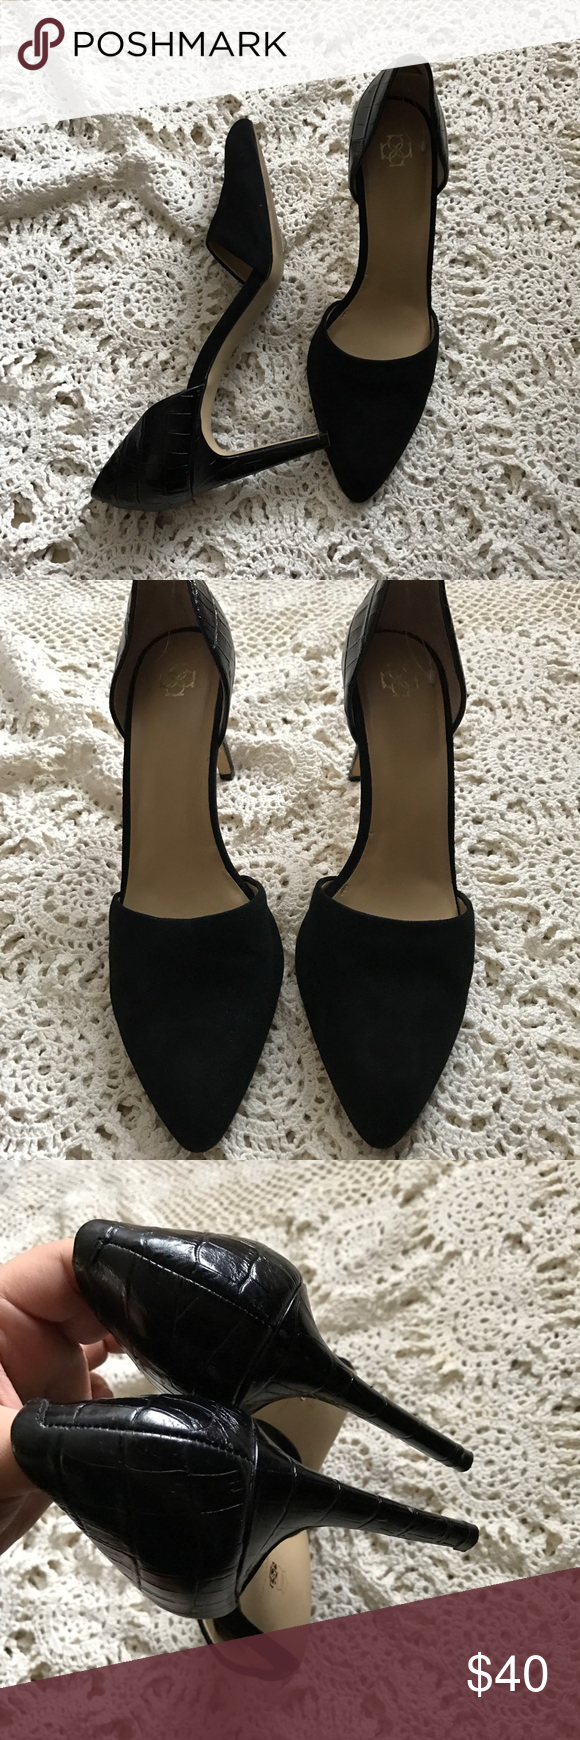 🍕SALE🍕Ann Taylor black pumps Gently used size 9M Ann Taylor Shoes Heels